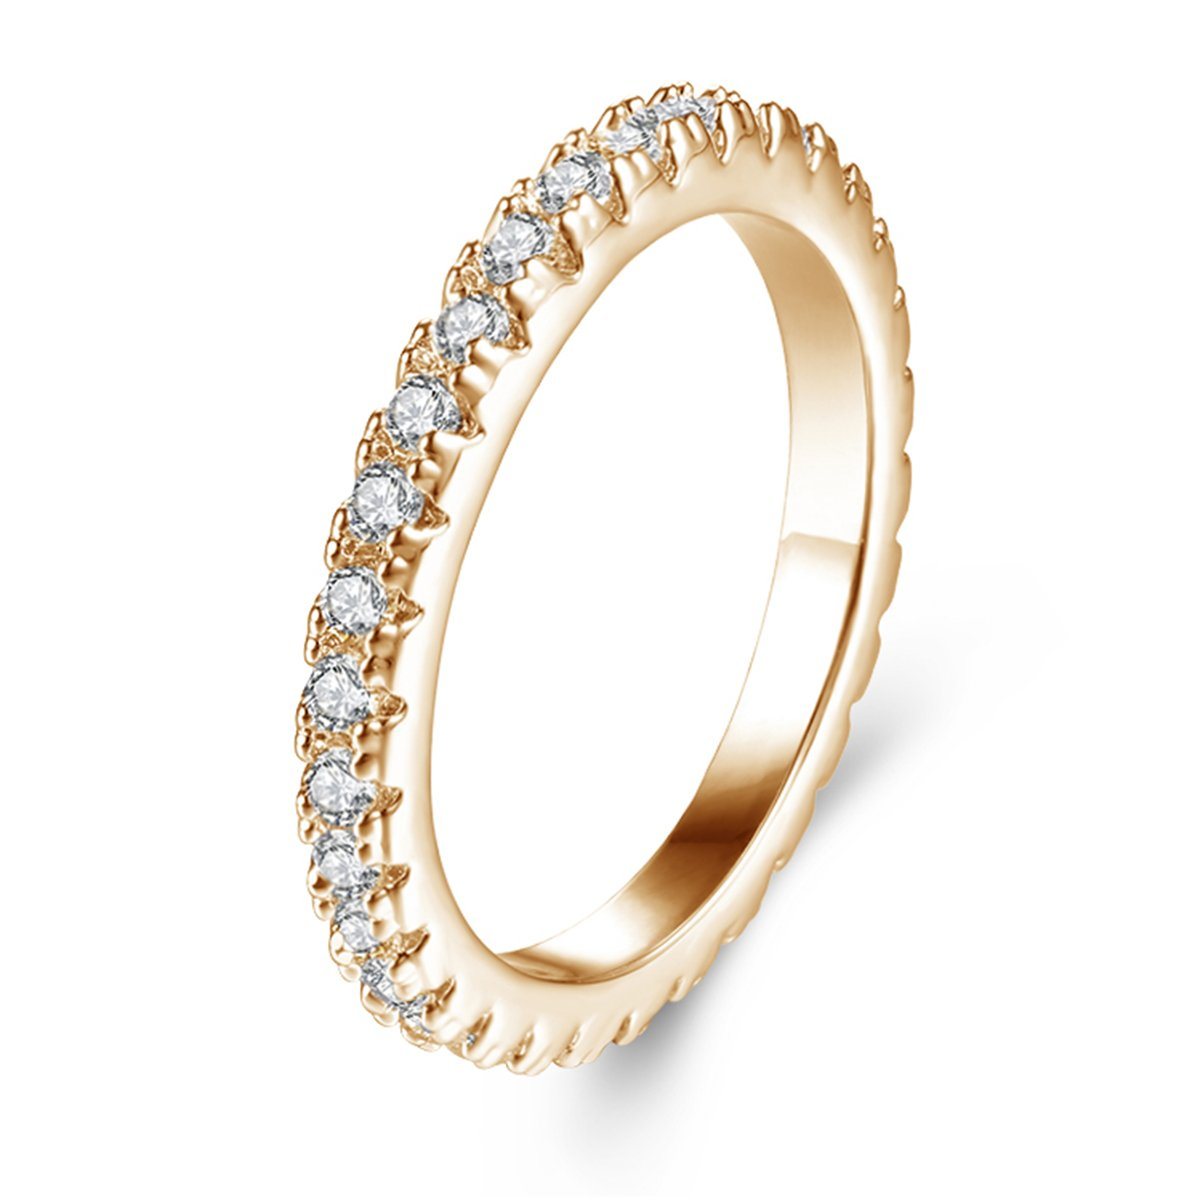 Jiangyue Women Band Rings AAA Cubic Zirconia Champagne Gold Plated Simple Solid Vibrant Ring Party Jewelry Size 5